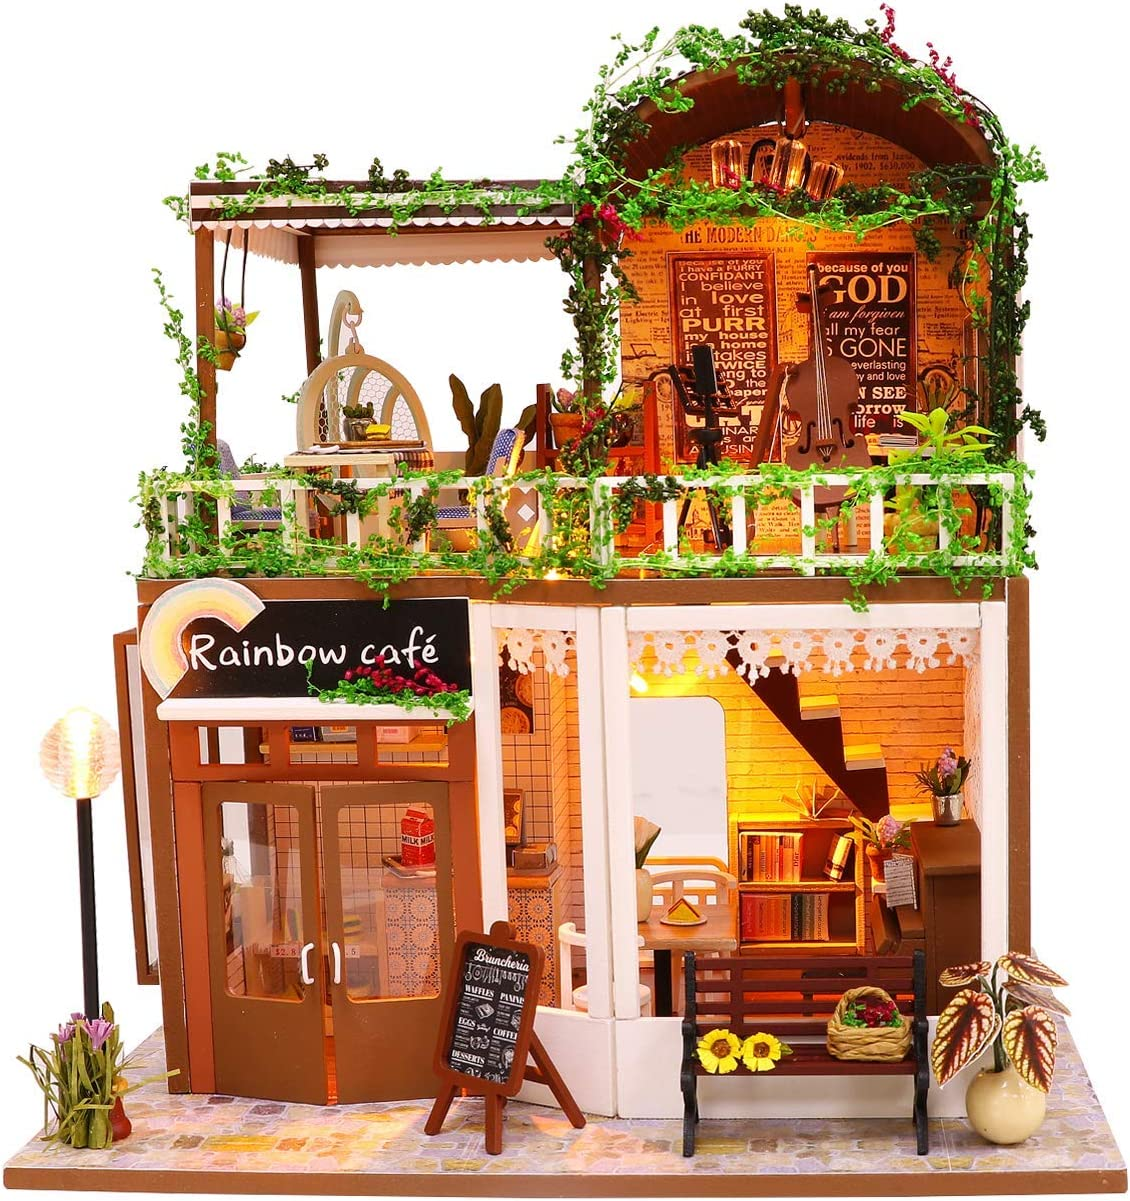 Hoomeda Miniature DIY Dollhouse Kits Wooden Rainbow Cafe Model with Furniture LED and Dustproof Cover and tools Mini Dollhouse for 14 year-old and older